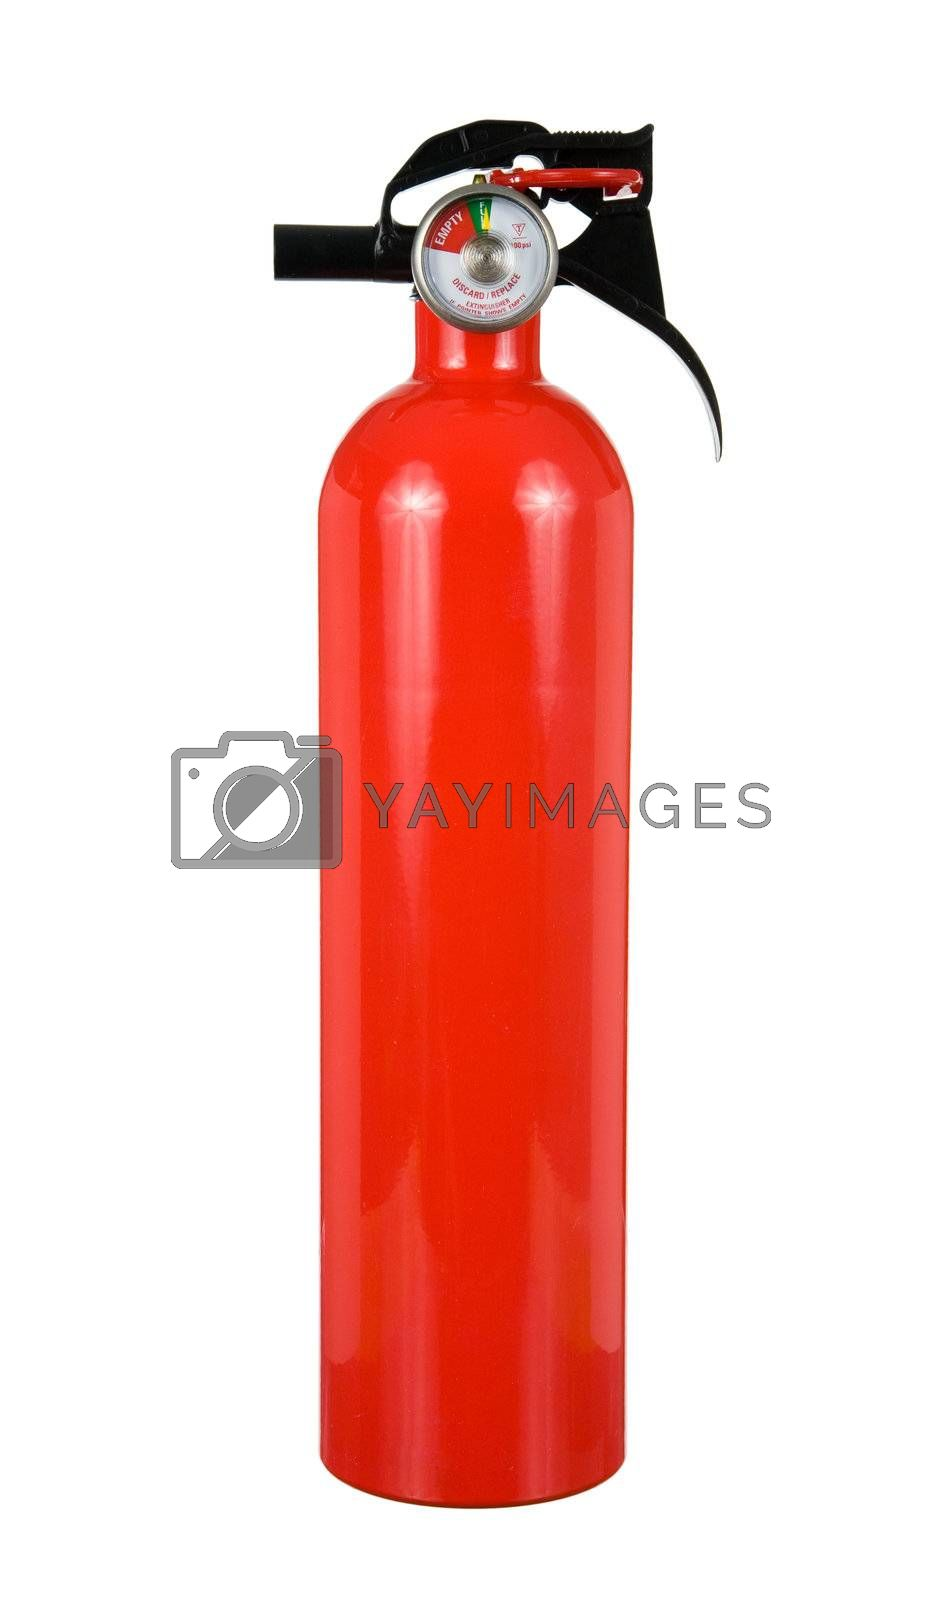 An isolated fire extinguisher on a white background.